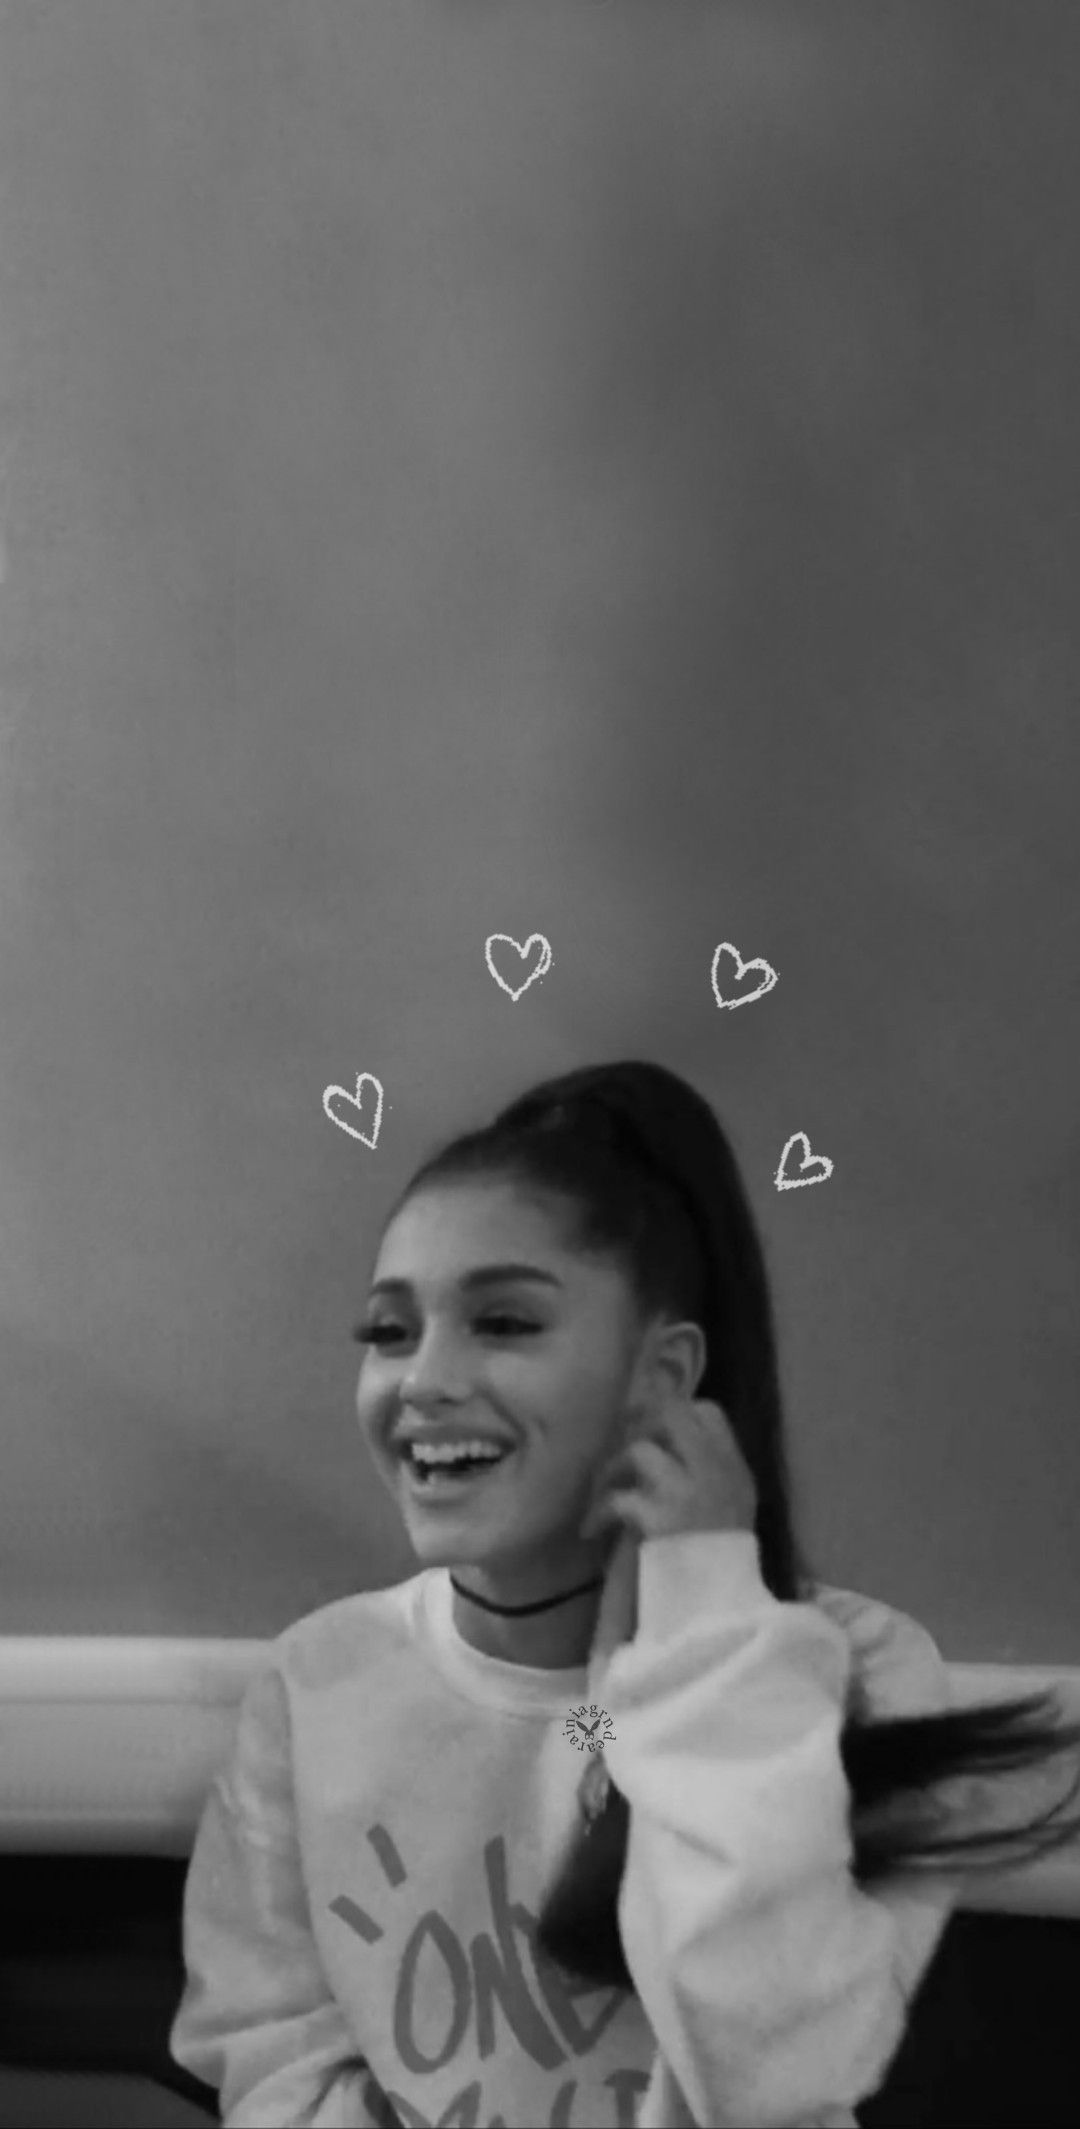 ariana grande wallpapers #lockscreeniphone ariana grande wallpapers #arianagrande ariana grande wallpapers #lockscreeniphone ariana grande wallpapers #wallphone